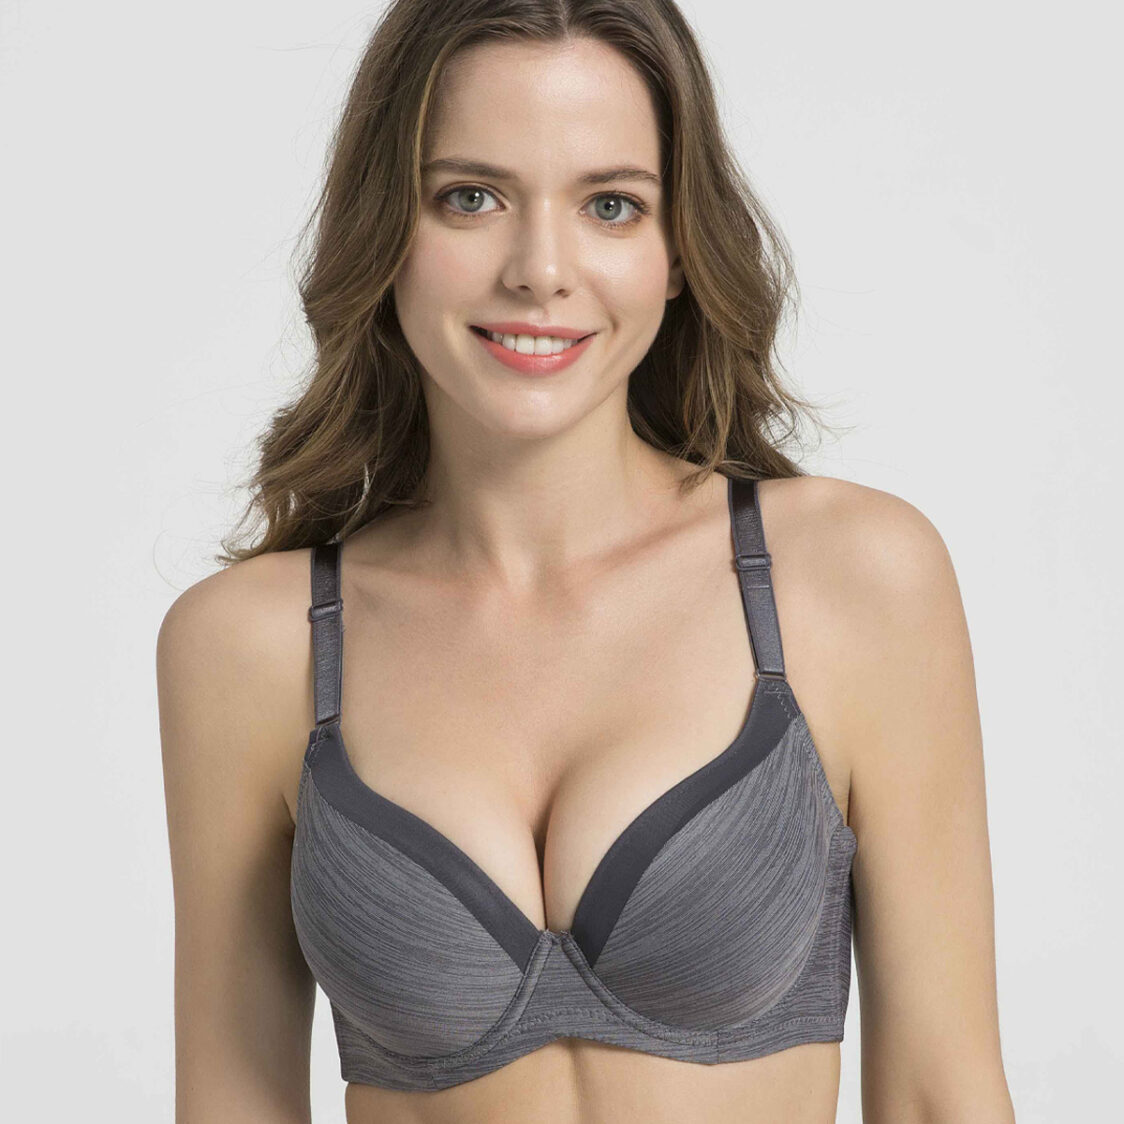 Strata Lace Full Cup Bra S10-29471GRY Grey